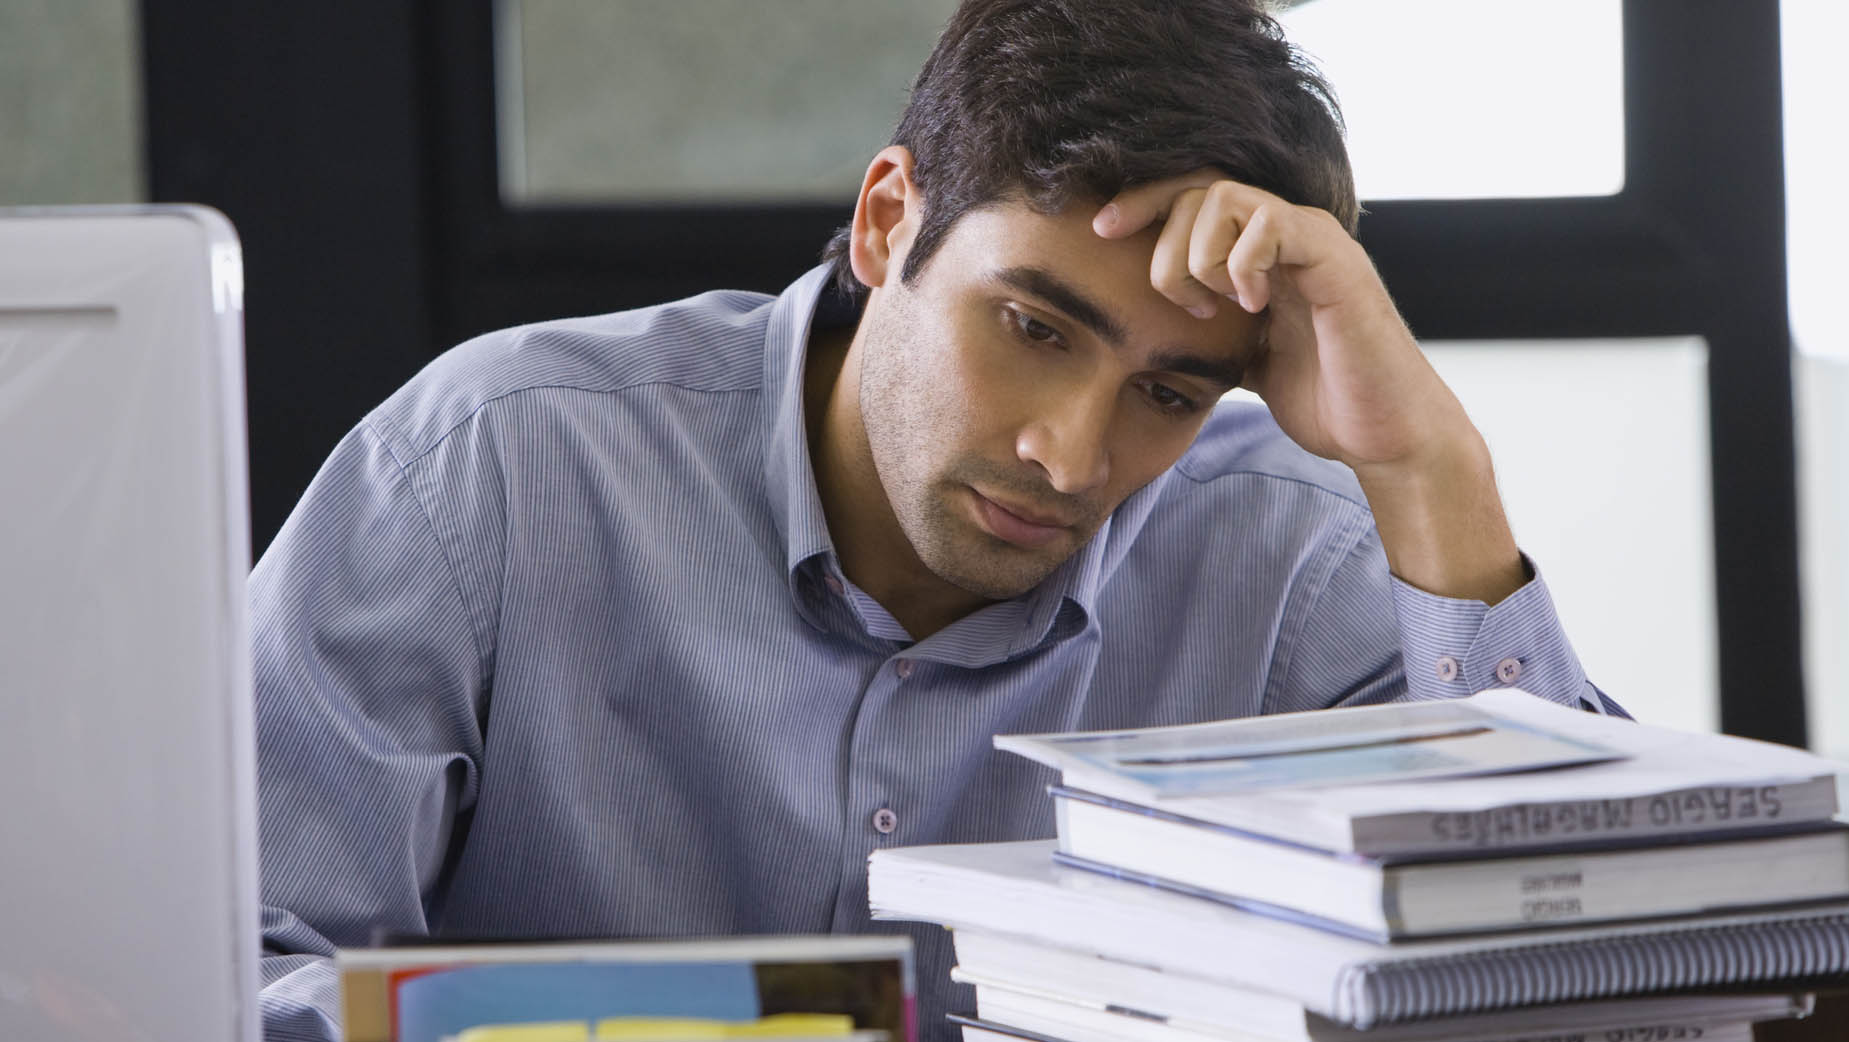 Stressed man resting forehead on hand